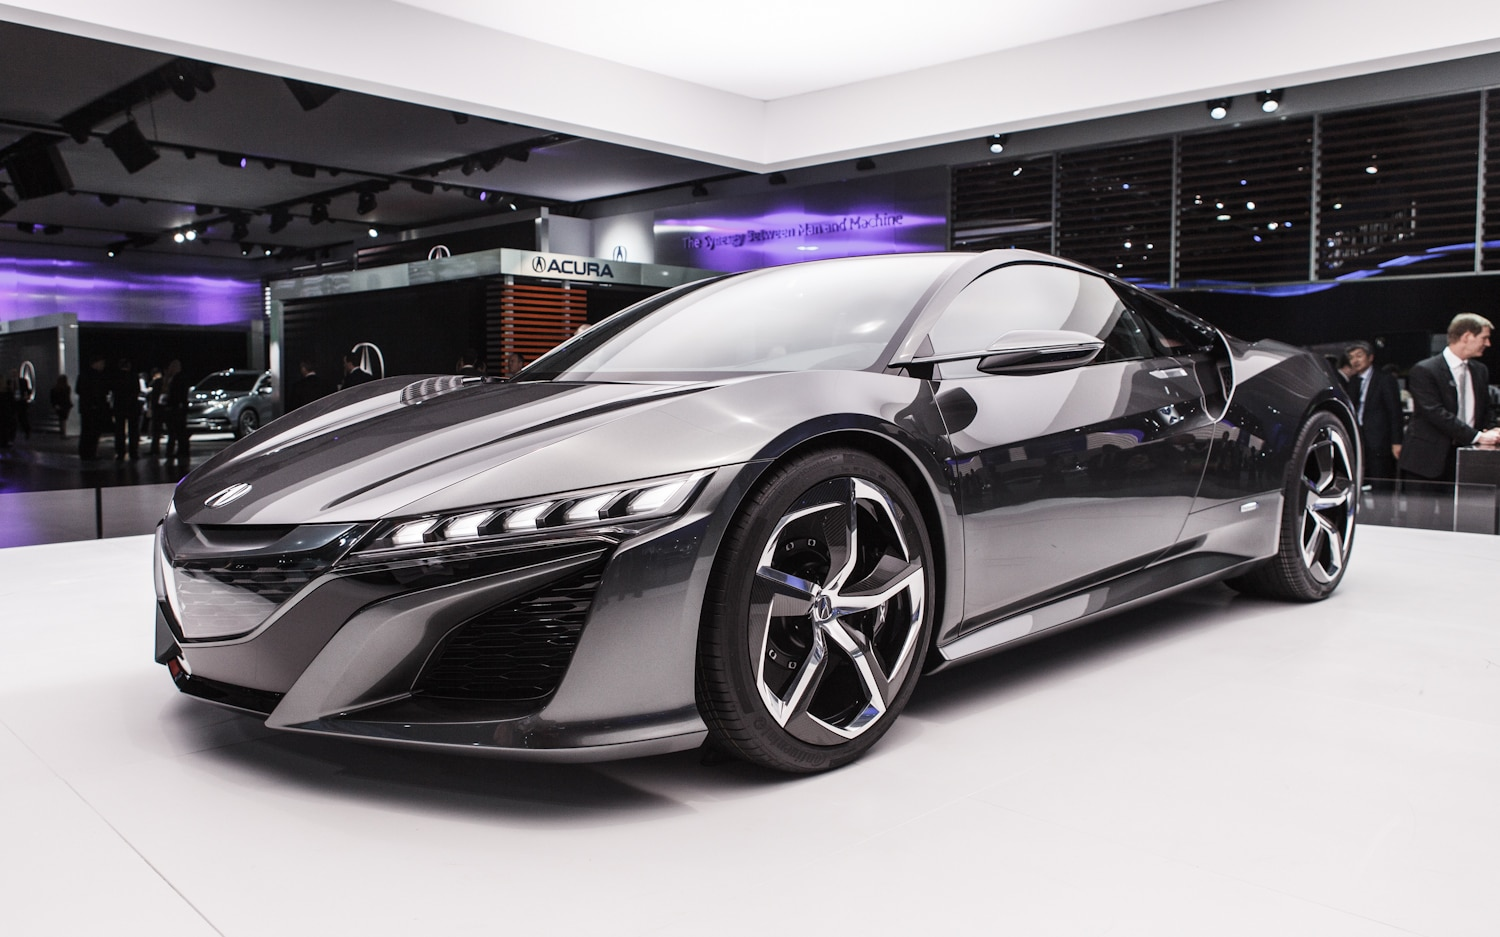 Detroit 2013: Acura Stuns With the NSX Concept…Again